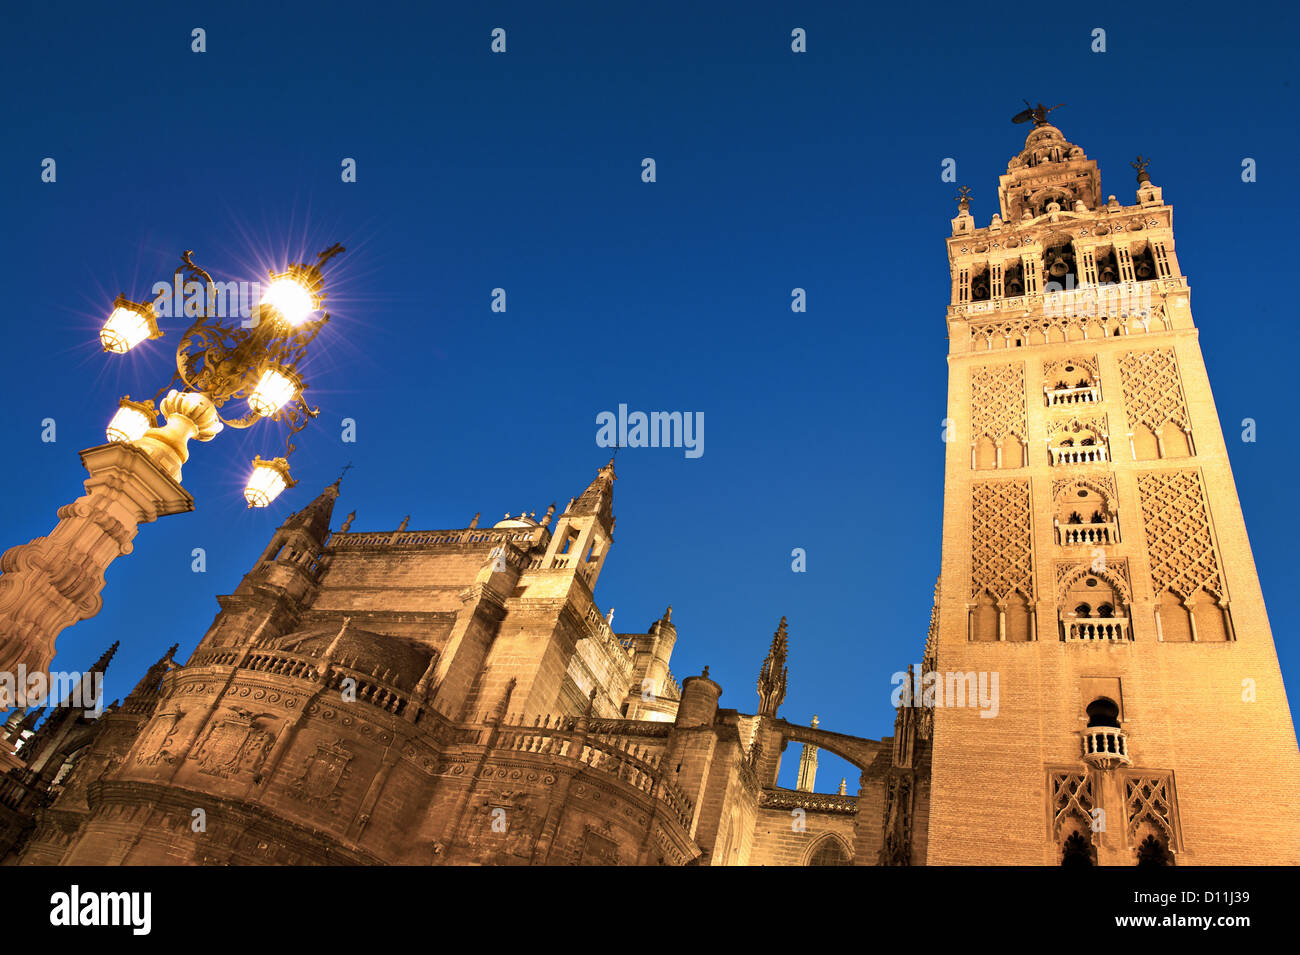 Cathedral and Giralda Tower,Seville,Andalusia,Spain. - Stock Image